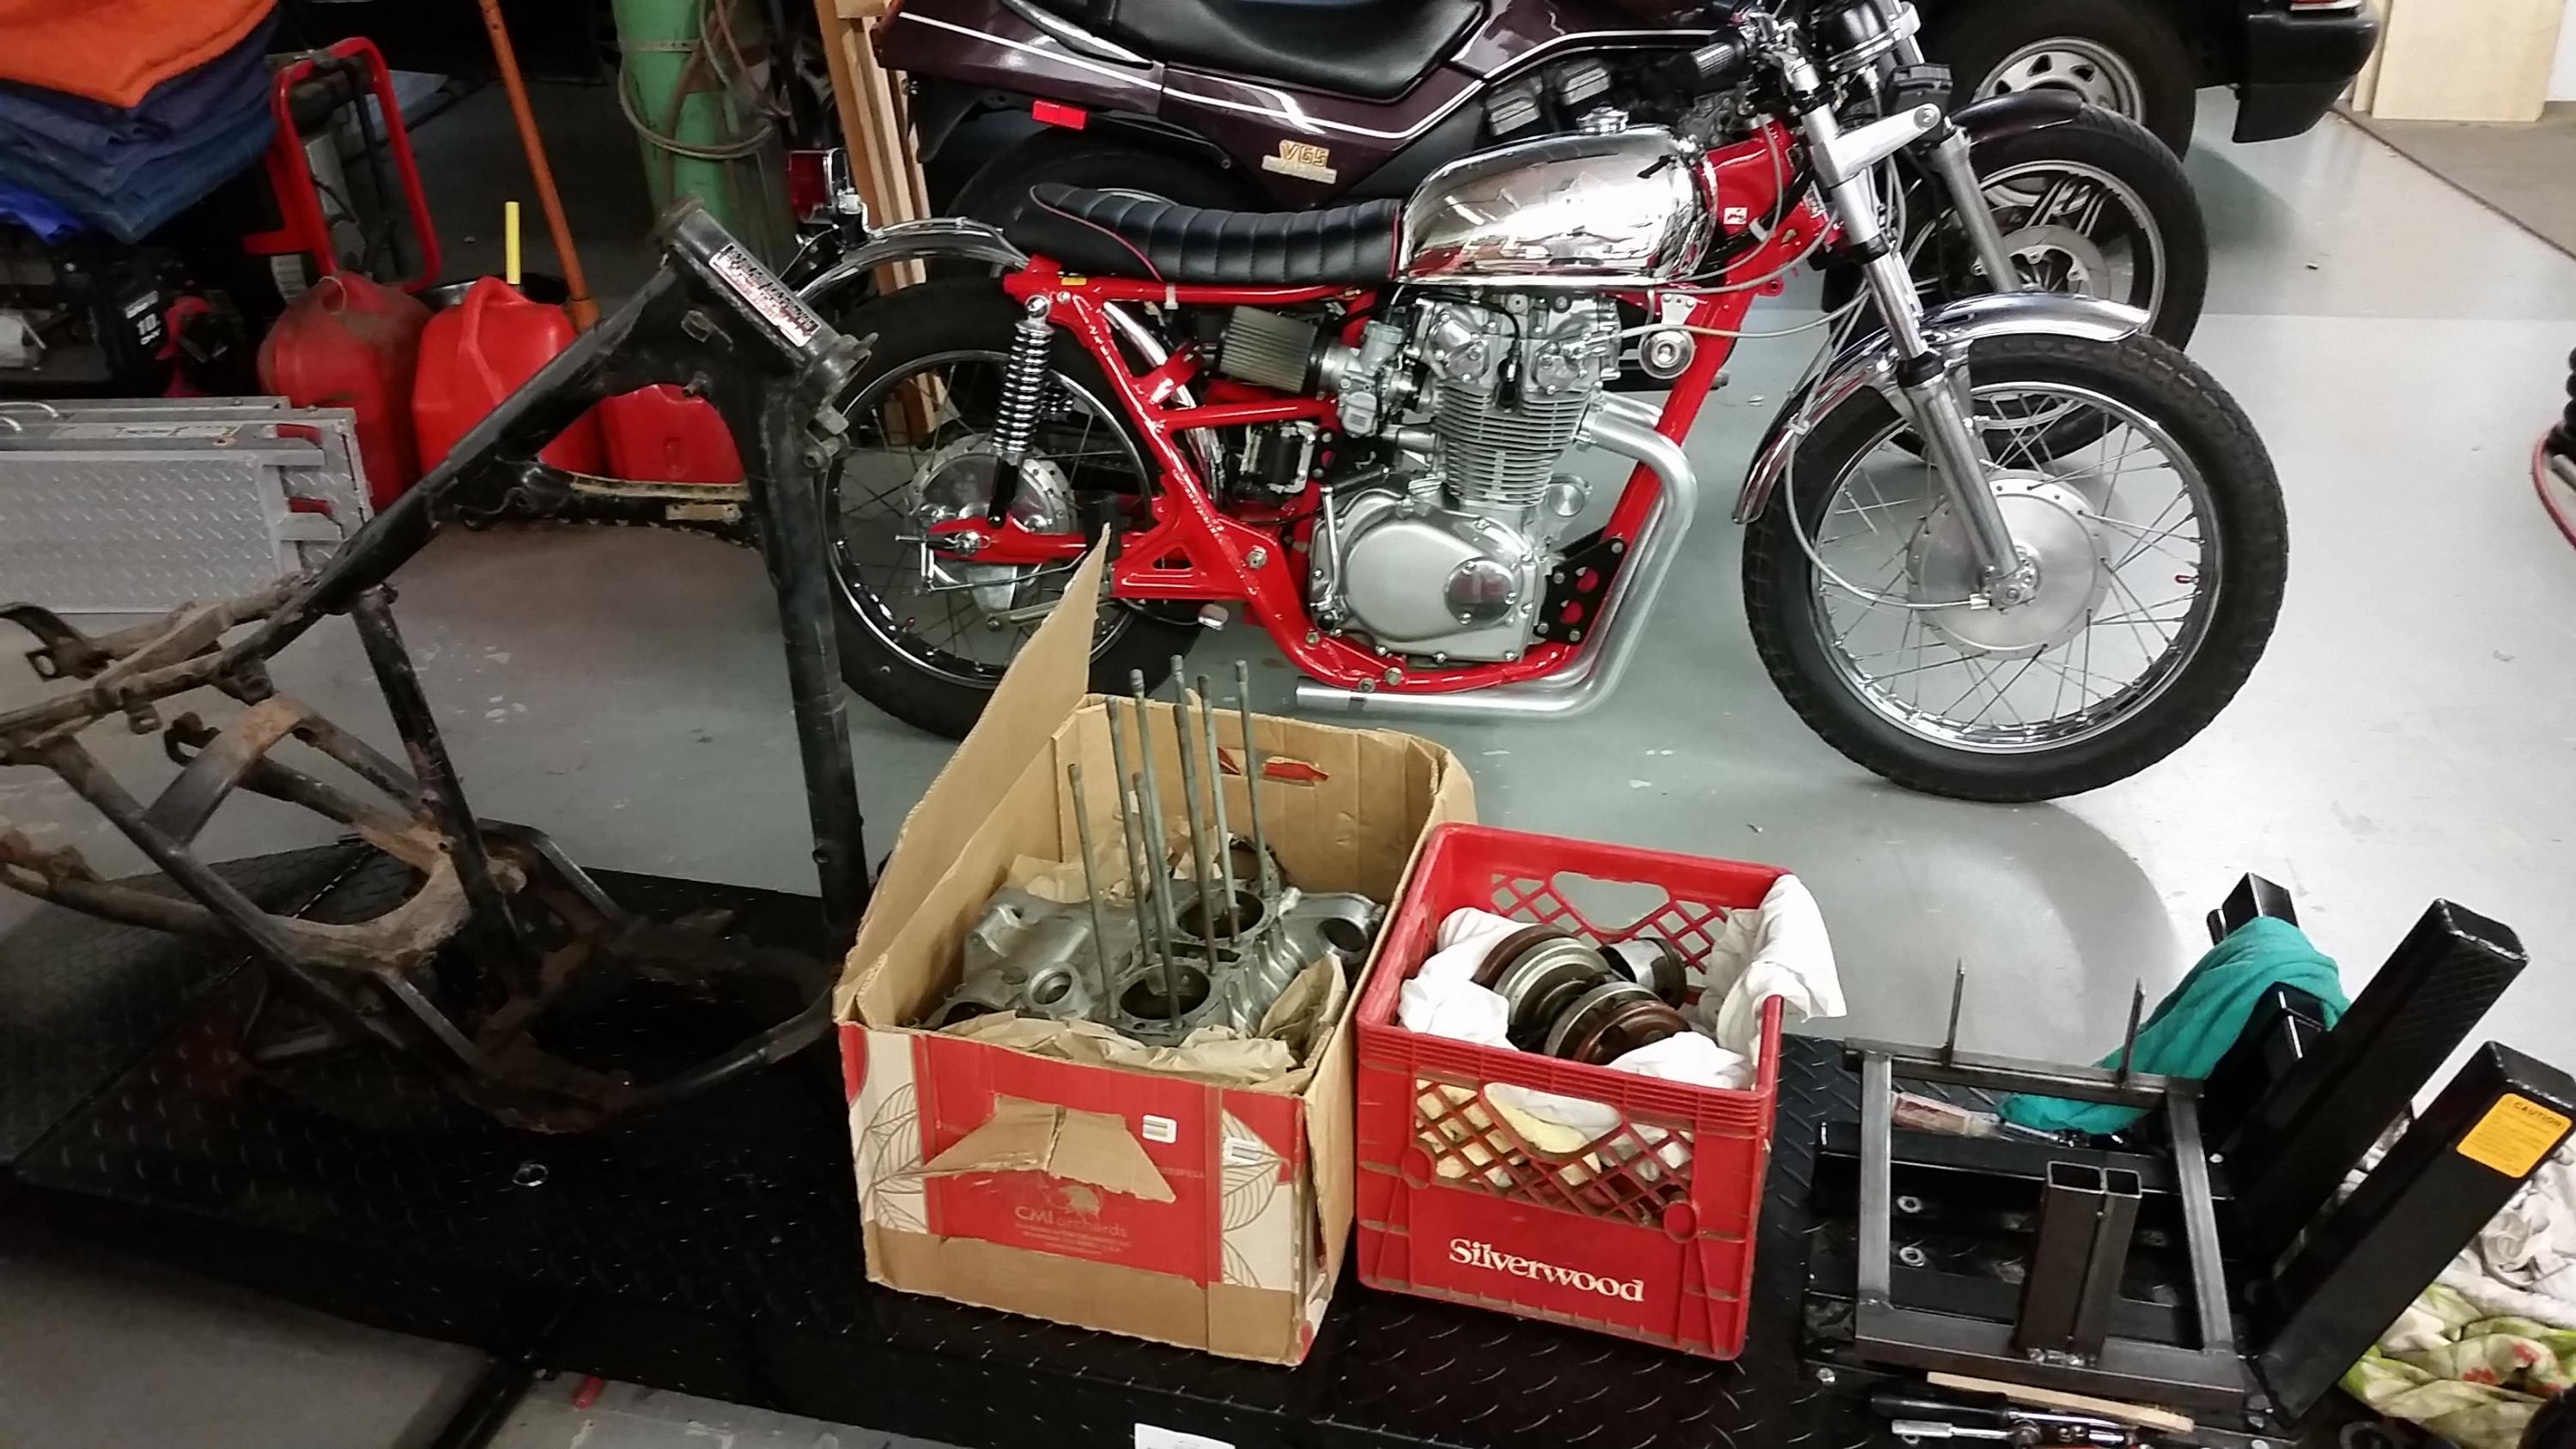 Budget 450 drag bike project-20190502_100656.jpg